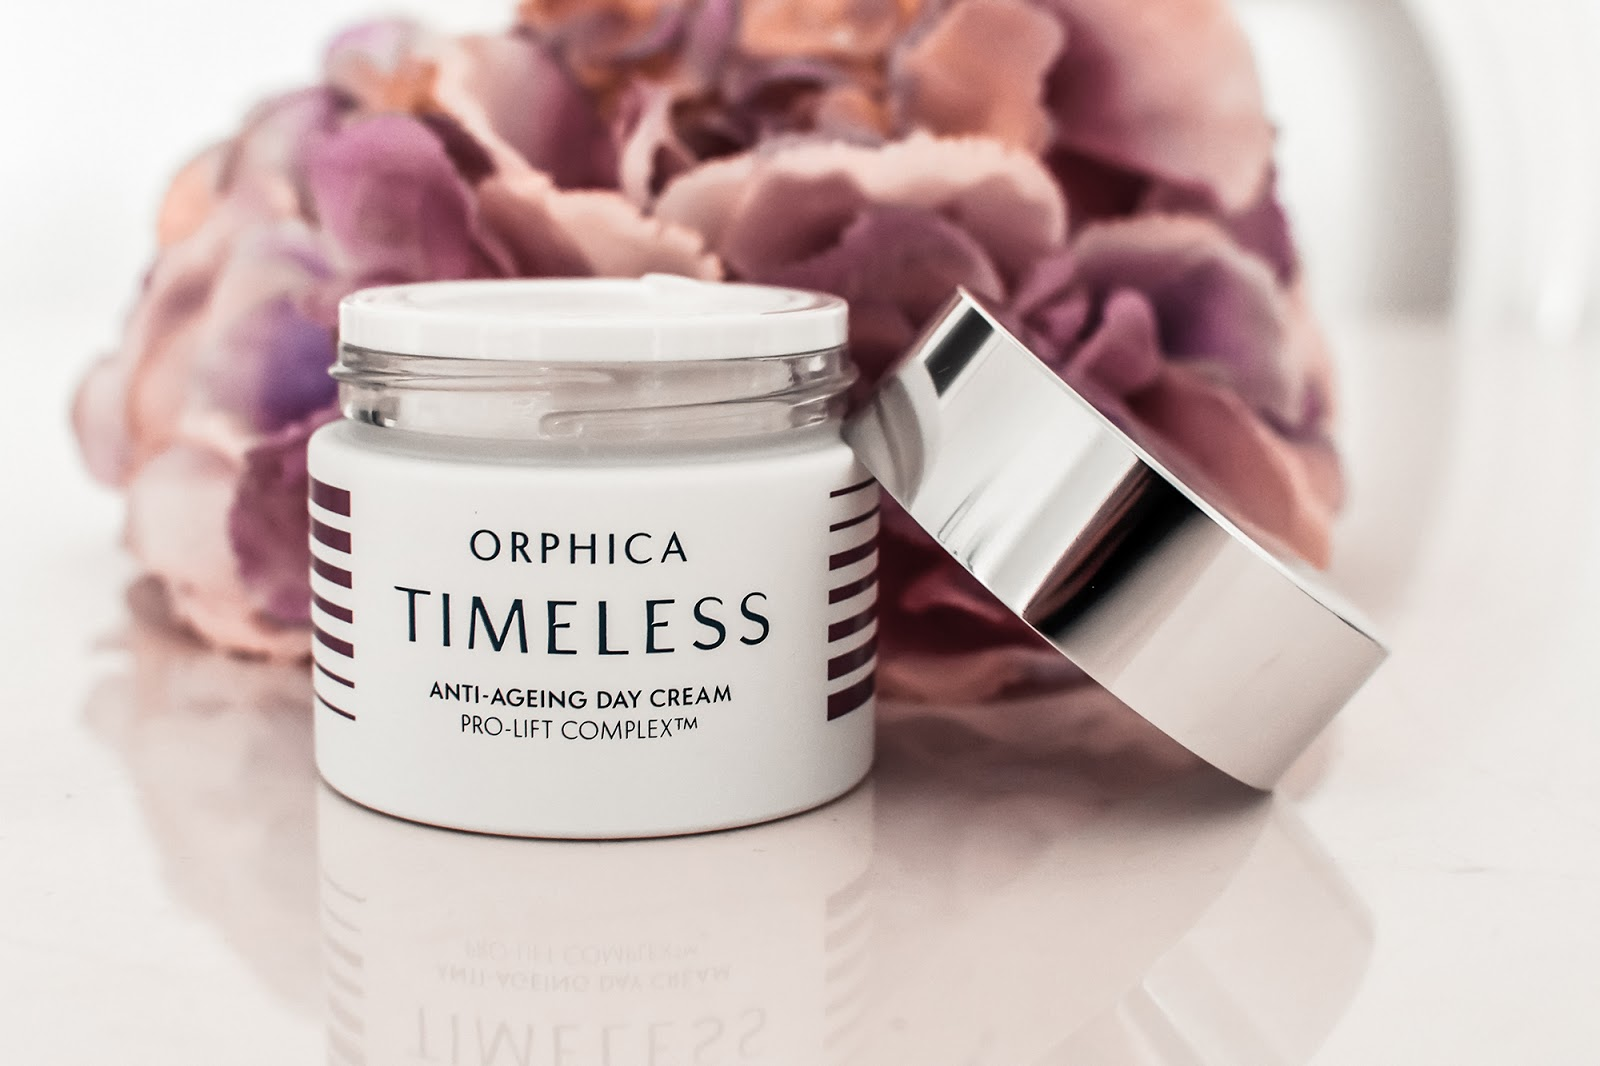 linea timeless orphica